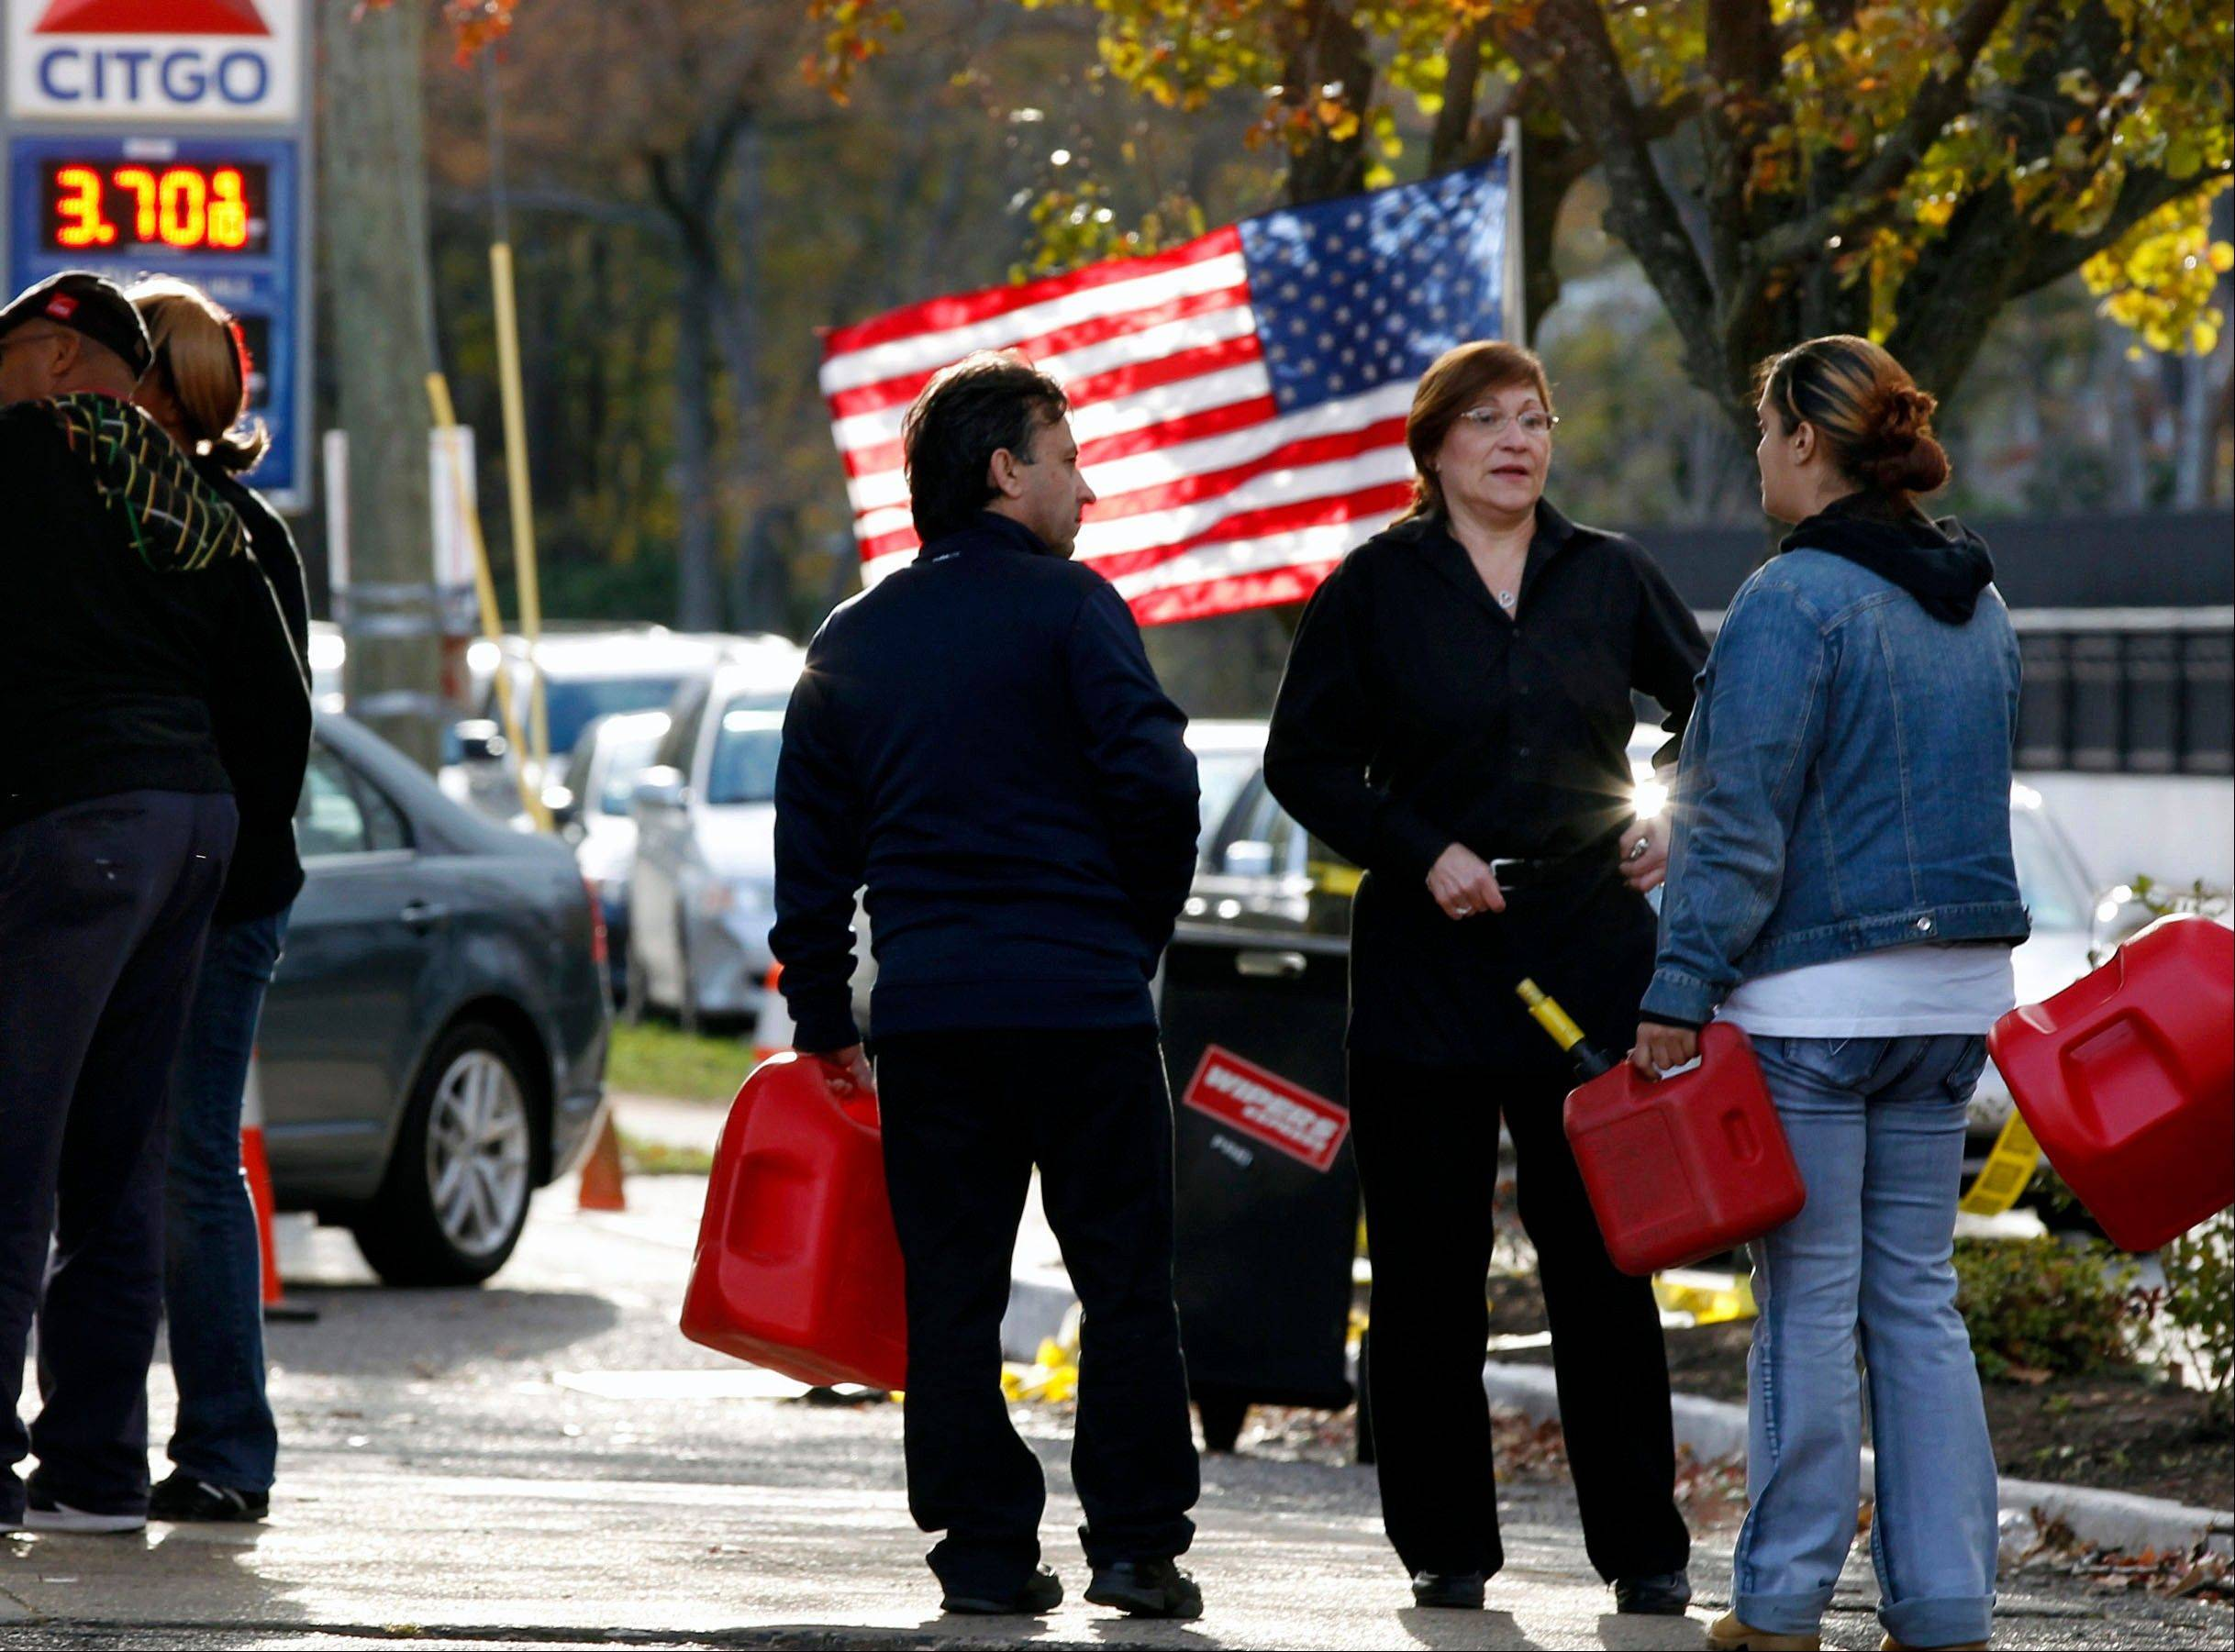 People wait in line with containers to purchase gasoline at filling station in Metuchen, N.J.